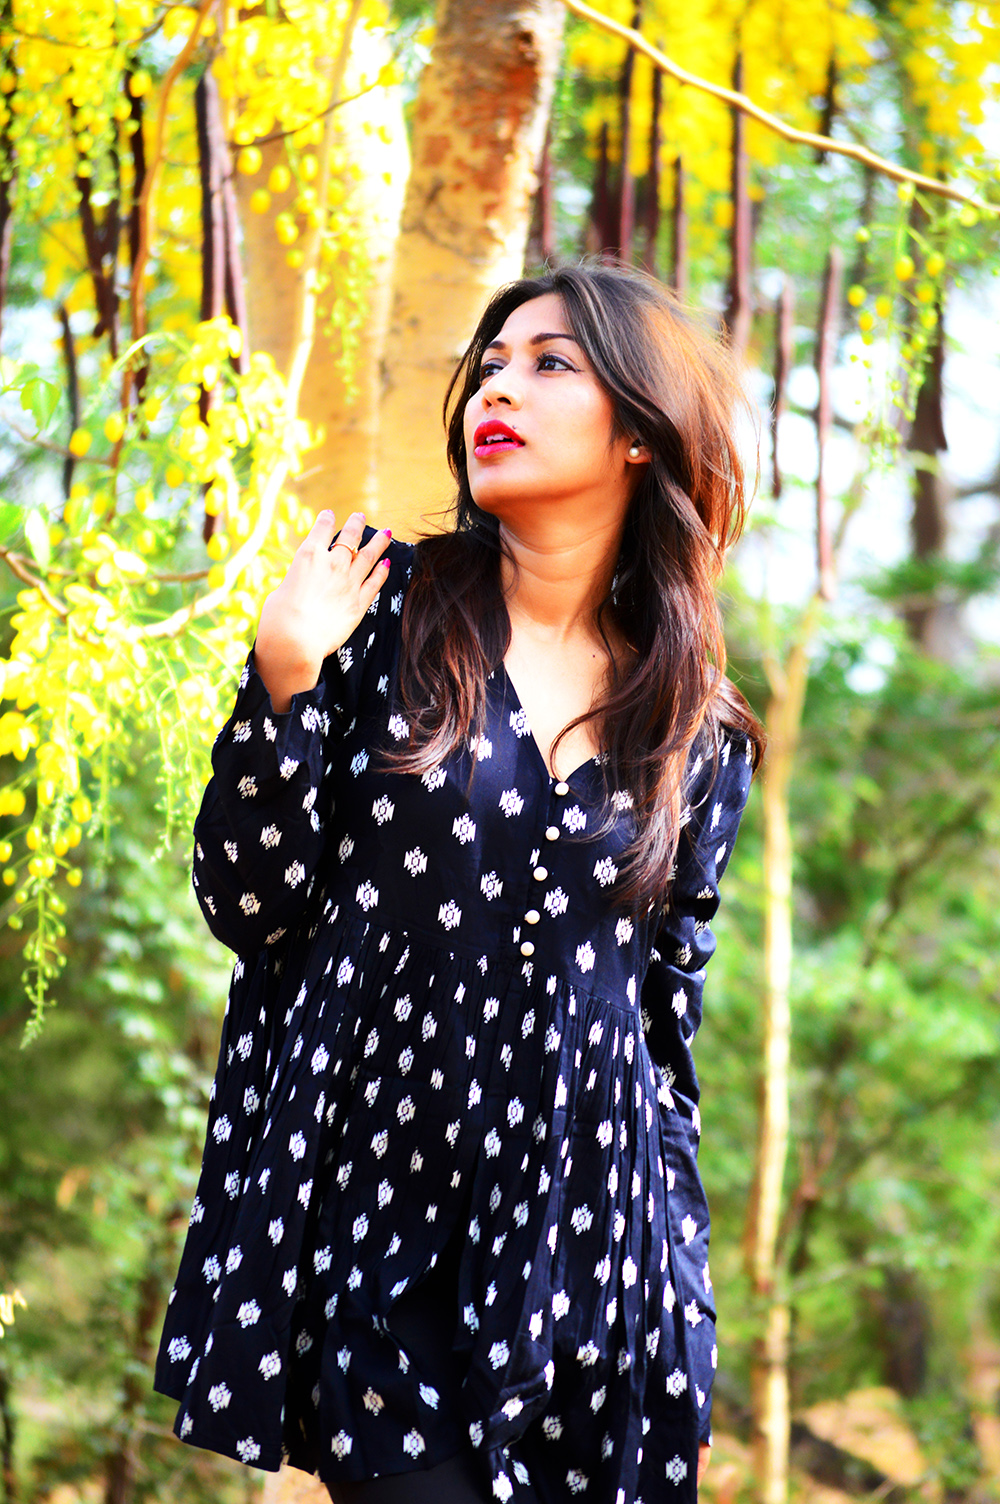 Fashion, Style, Fashion Photography, Street Style, Personal Style Blogger, Indian Fashion Blog, Summer Fashion, Black Printed Blouse, Black distressed denim, Navy booties, Red lip color, Fashion Blogger